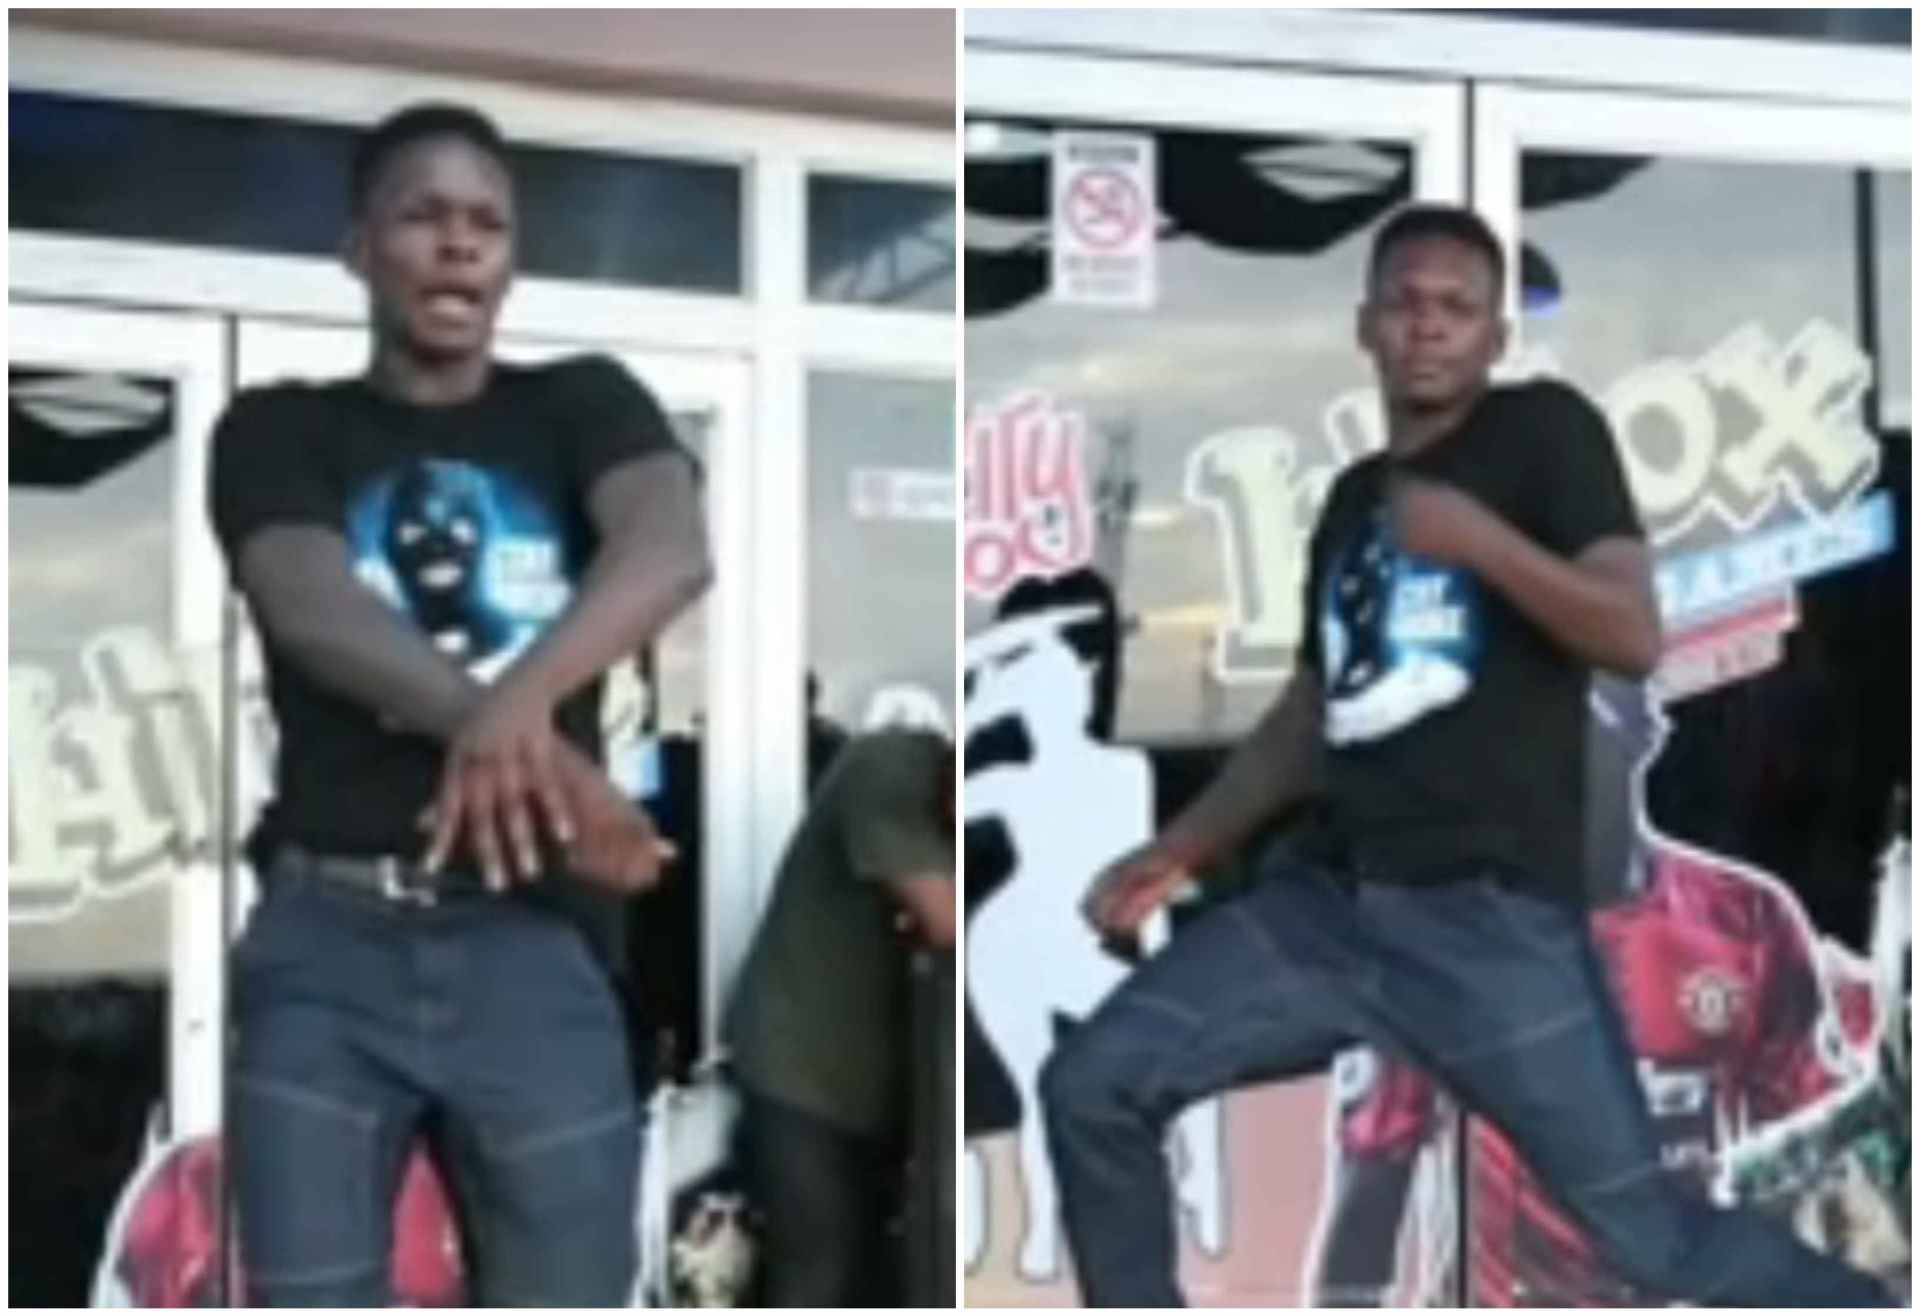 UFC News: Video emerges of Israel Adesanya freestyle dancing - and there is NO WAY Yoel Romero can do that! - Israel